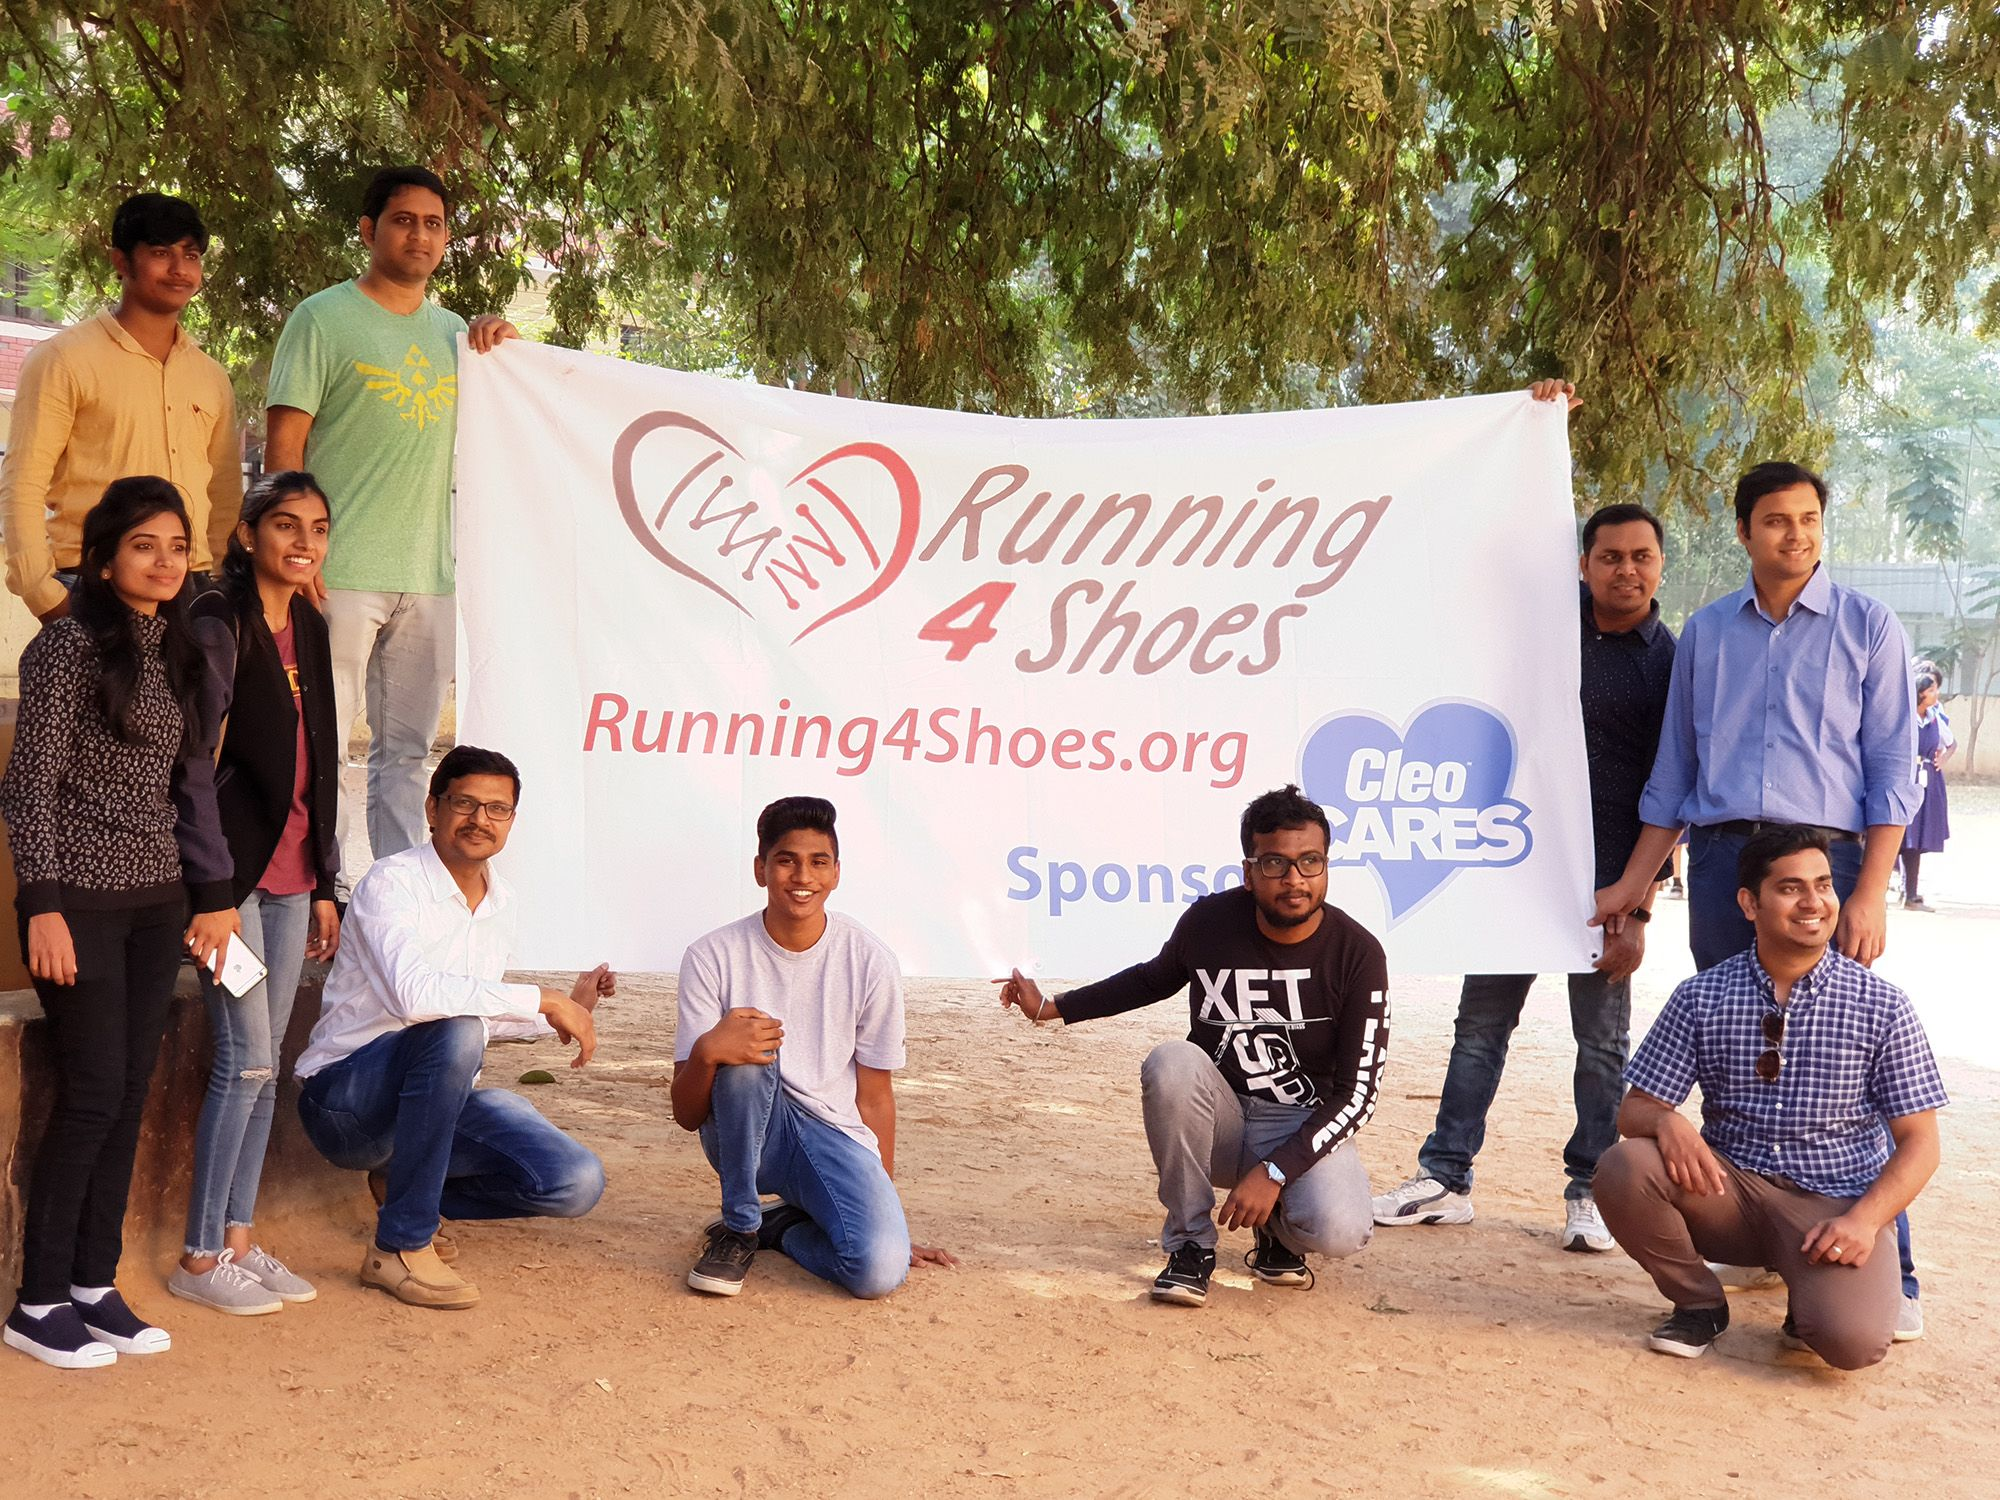 Cleo Cares 2018: Running4Shoes